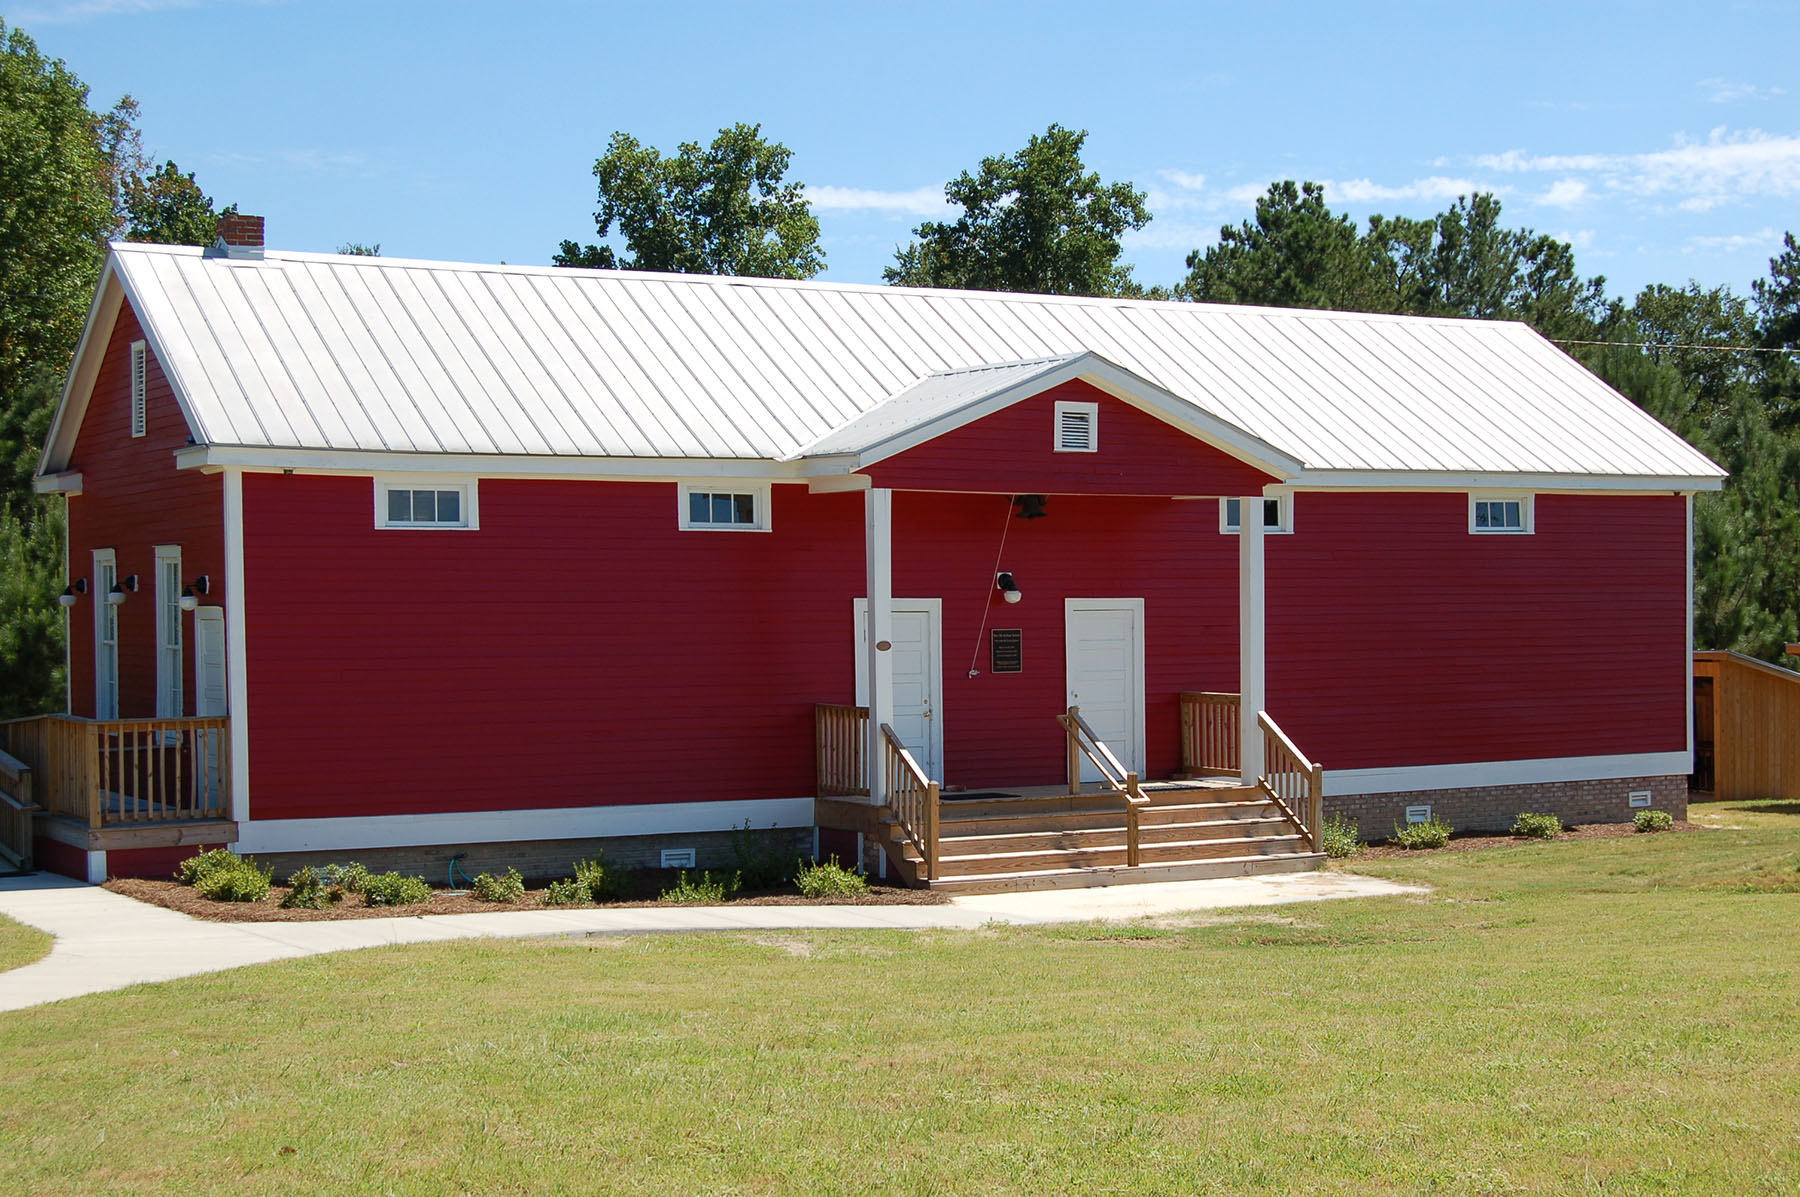 Old Killian School restored and is now located on the grounds of Killian Elementary School. Photo by Jim McLean